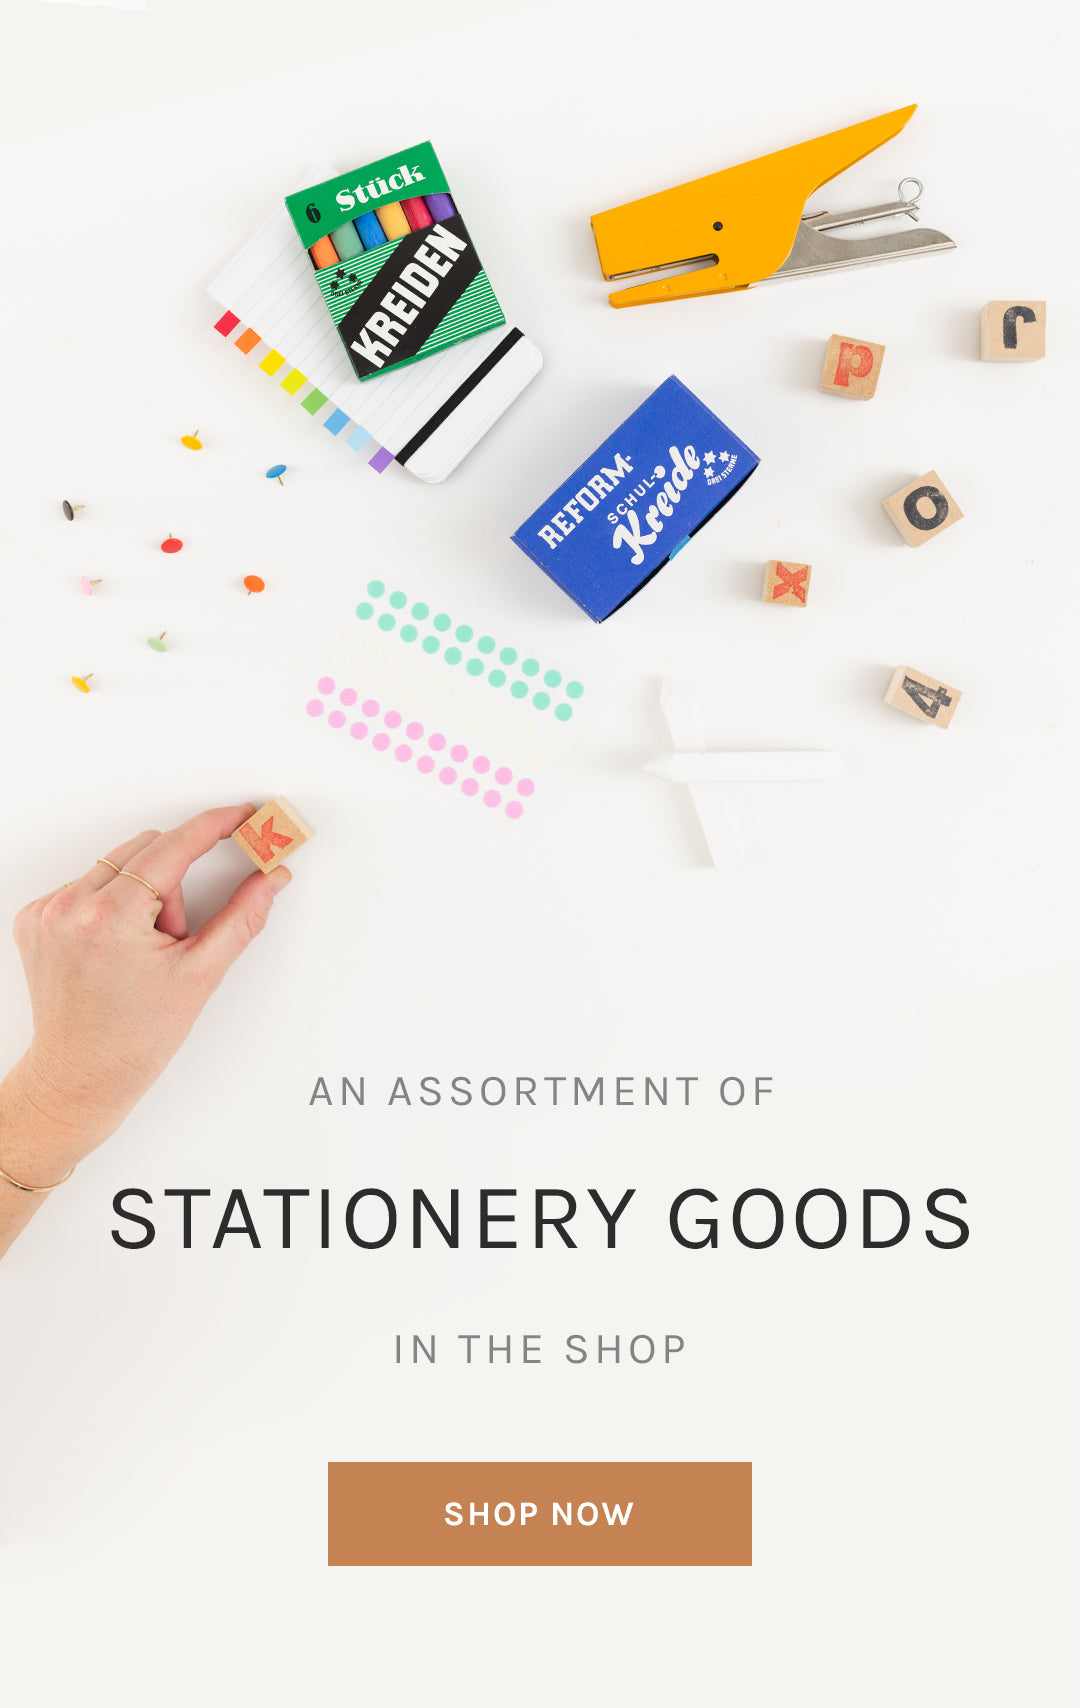 An Assortment of Retro Stationery Goods in the Shop